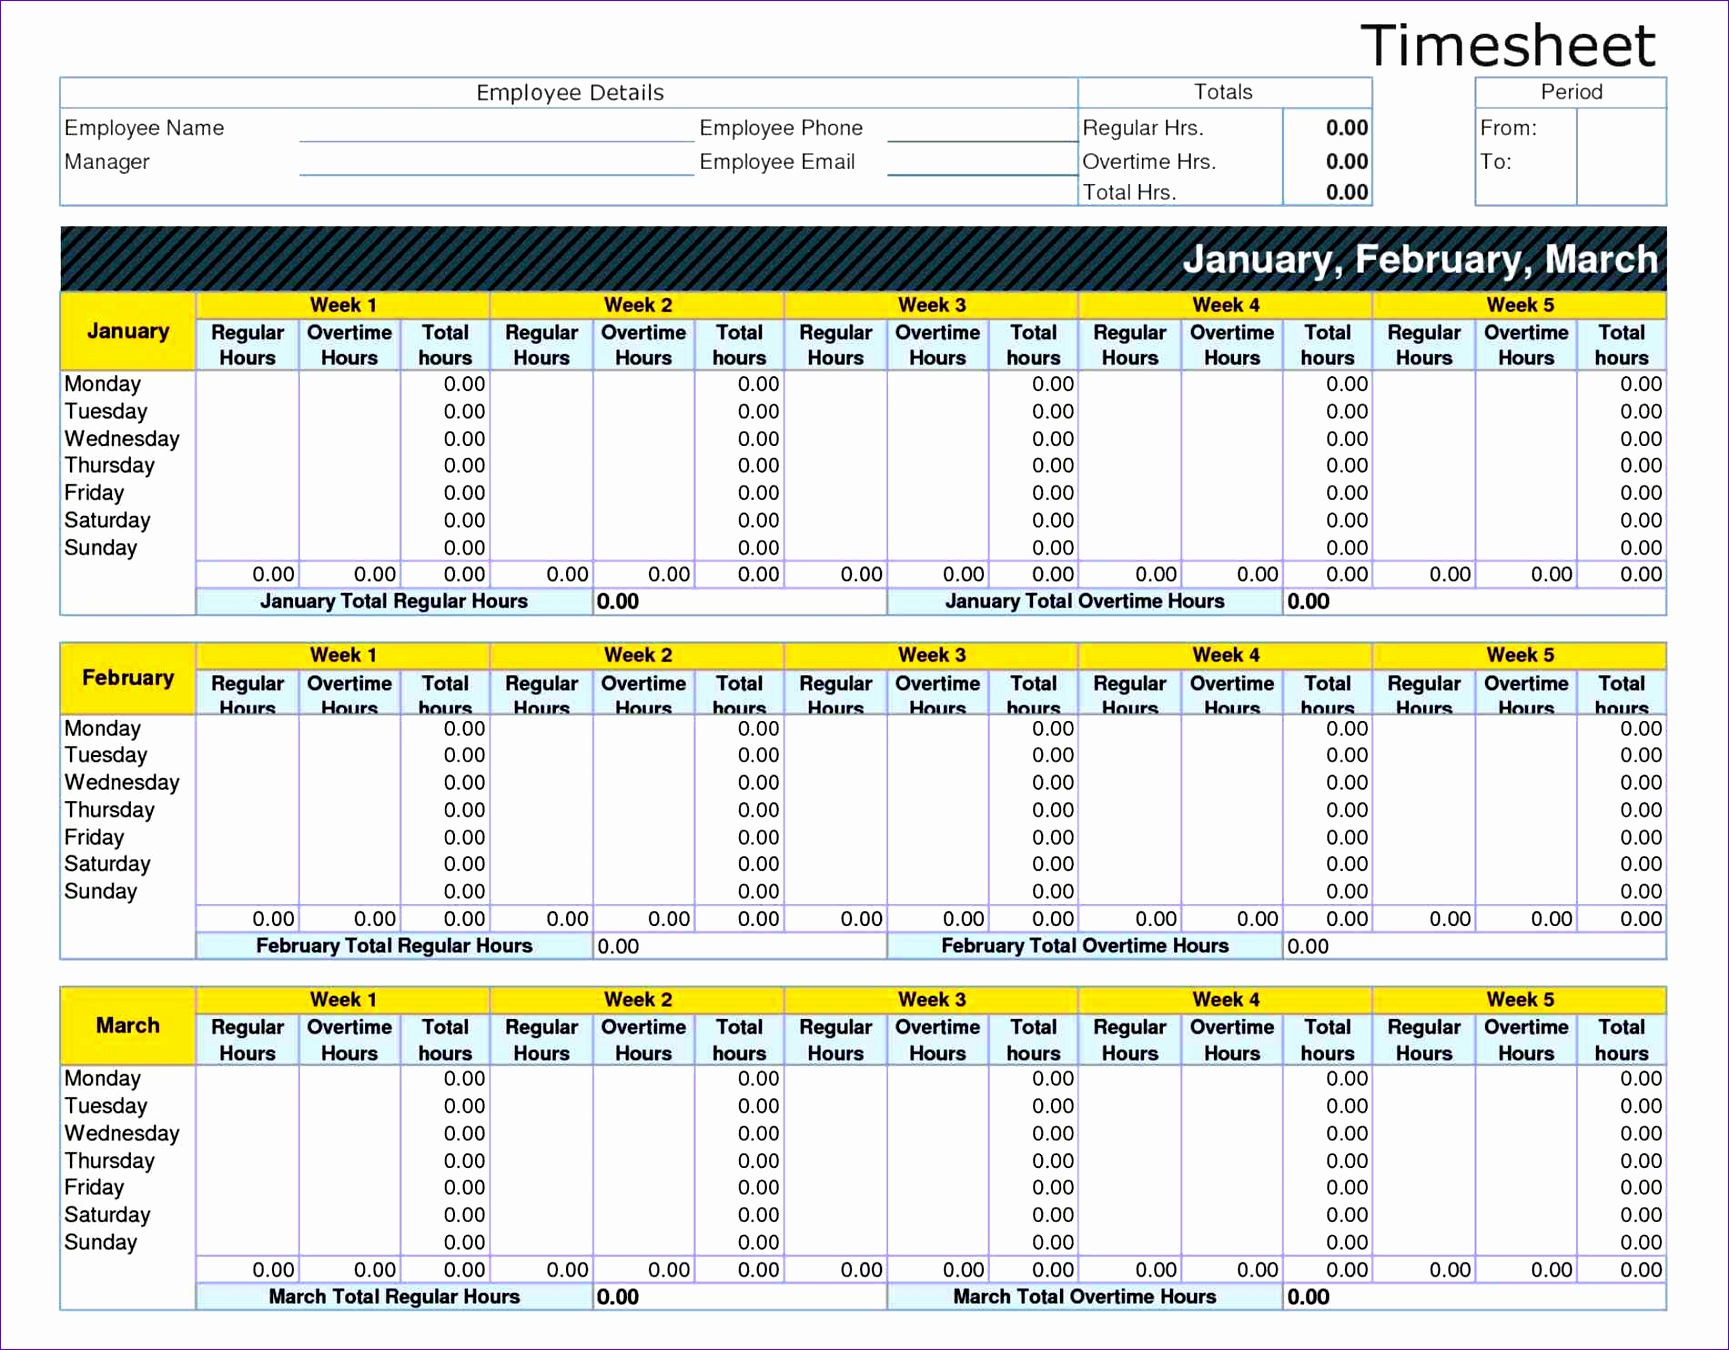 timesheet template simple profit and loss excel free sendlettersinfo timesheet Time Sheets Templates Free template free sendlettersinfo excel outline templates timesheet Time